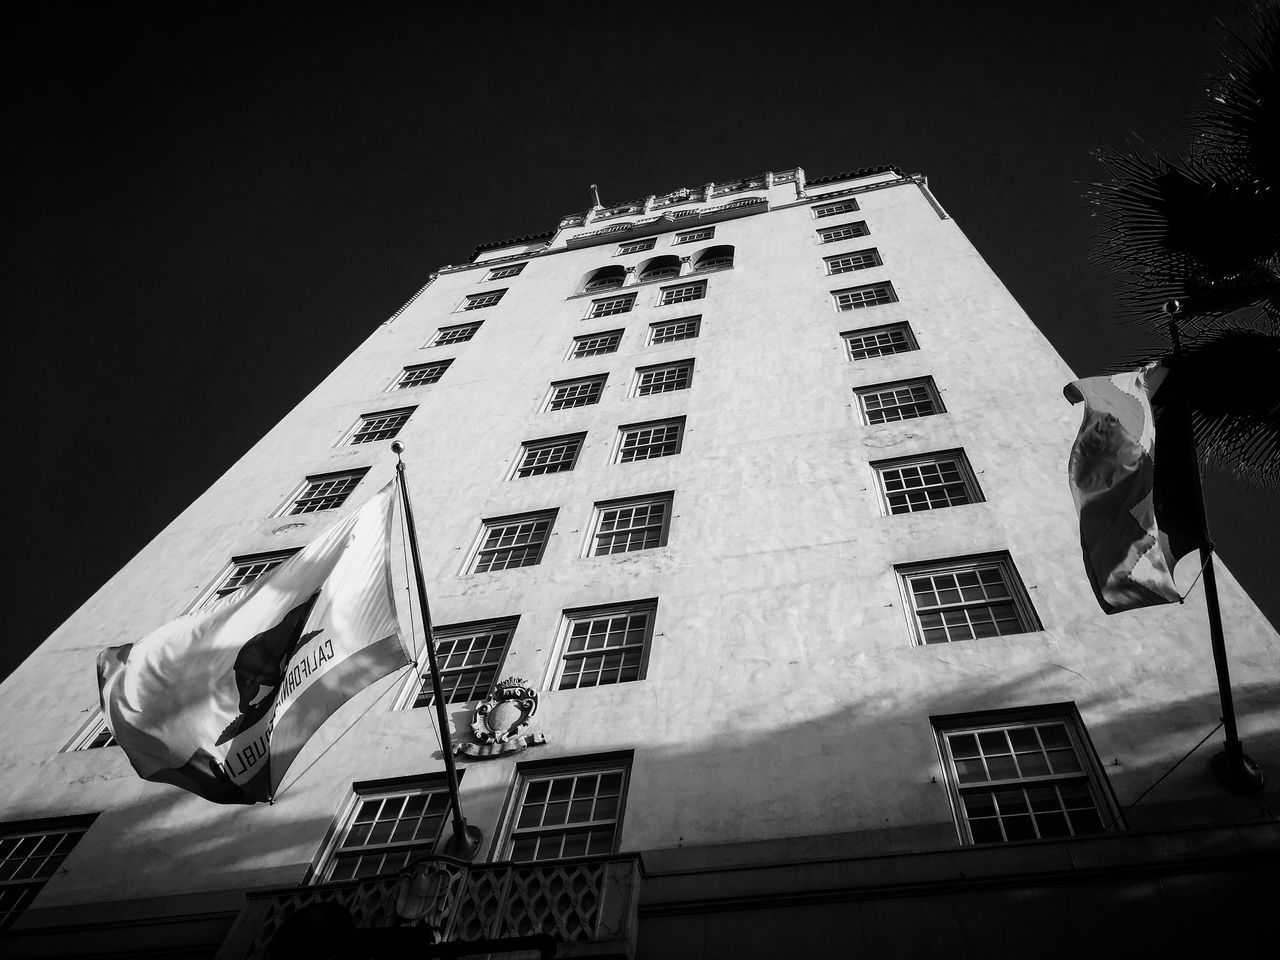 Roosevelt Hotel / Hollywood, California Architecture Archival Building Exterior Built Structure City Film Noir Hollywood Hollywood Boulevard Hotel Low Angle View Monochrome No People Outdoors Roosevelt Hotel, Los Angeles Sky